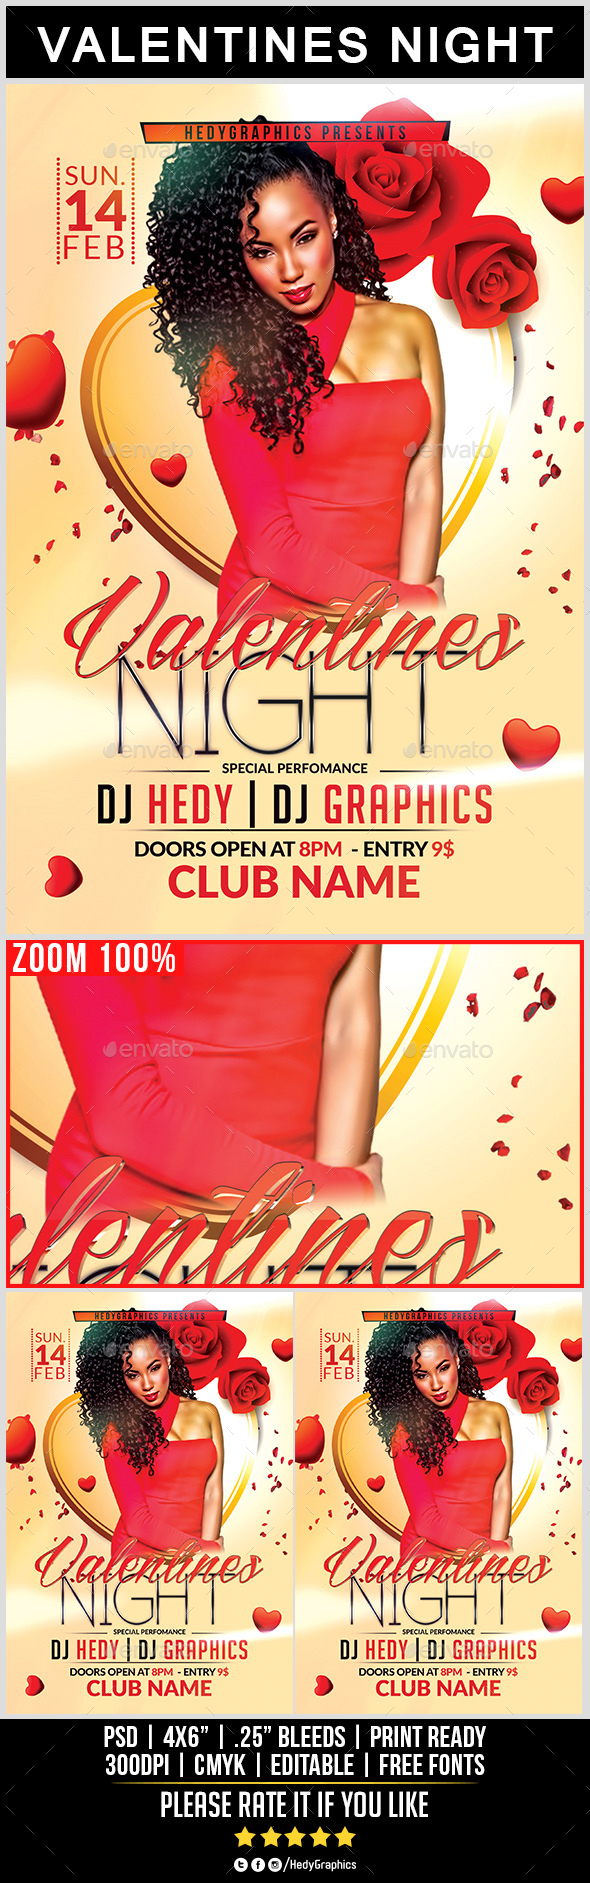 Valentines Night - Flyer Template